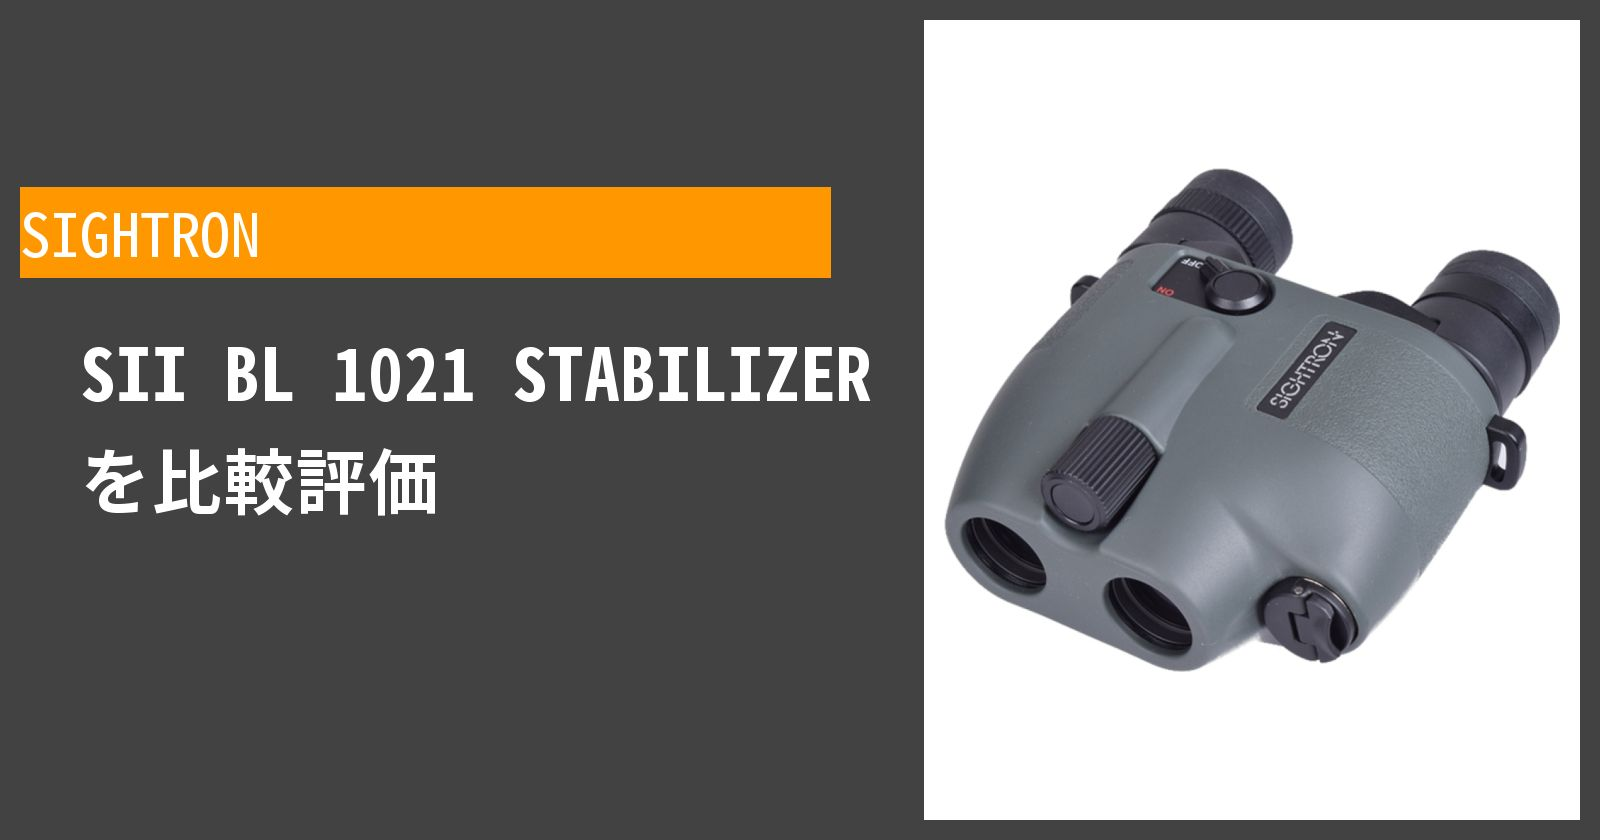 SII BL 1021 STABILIZERを徹底評価